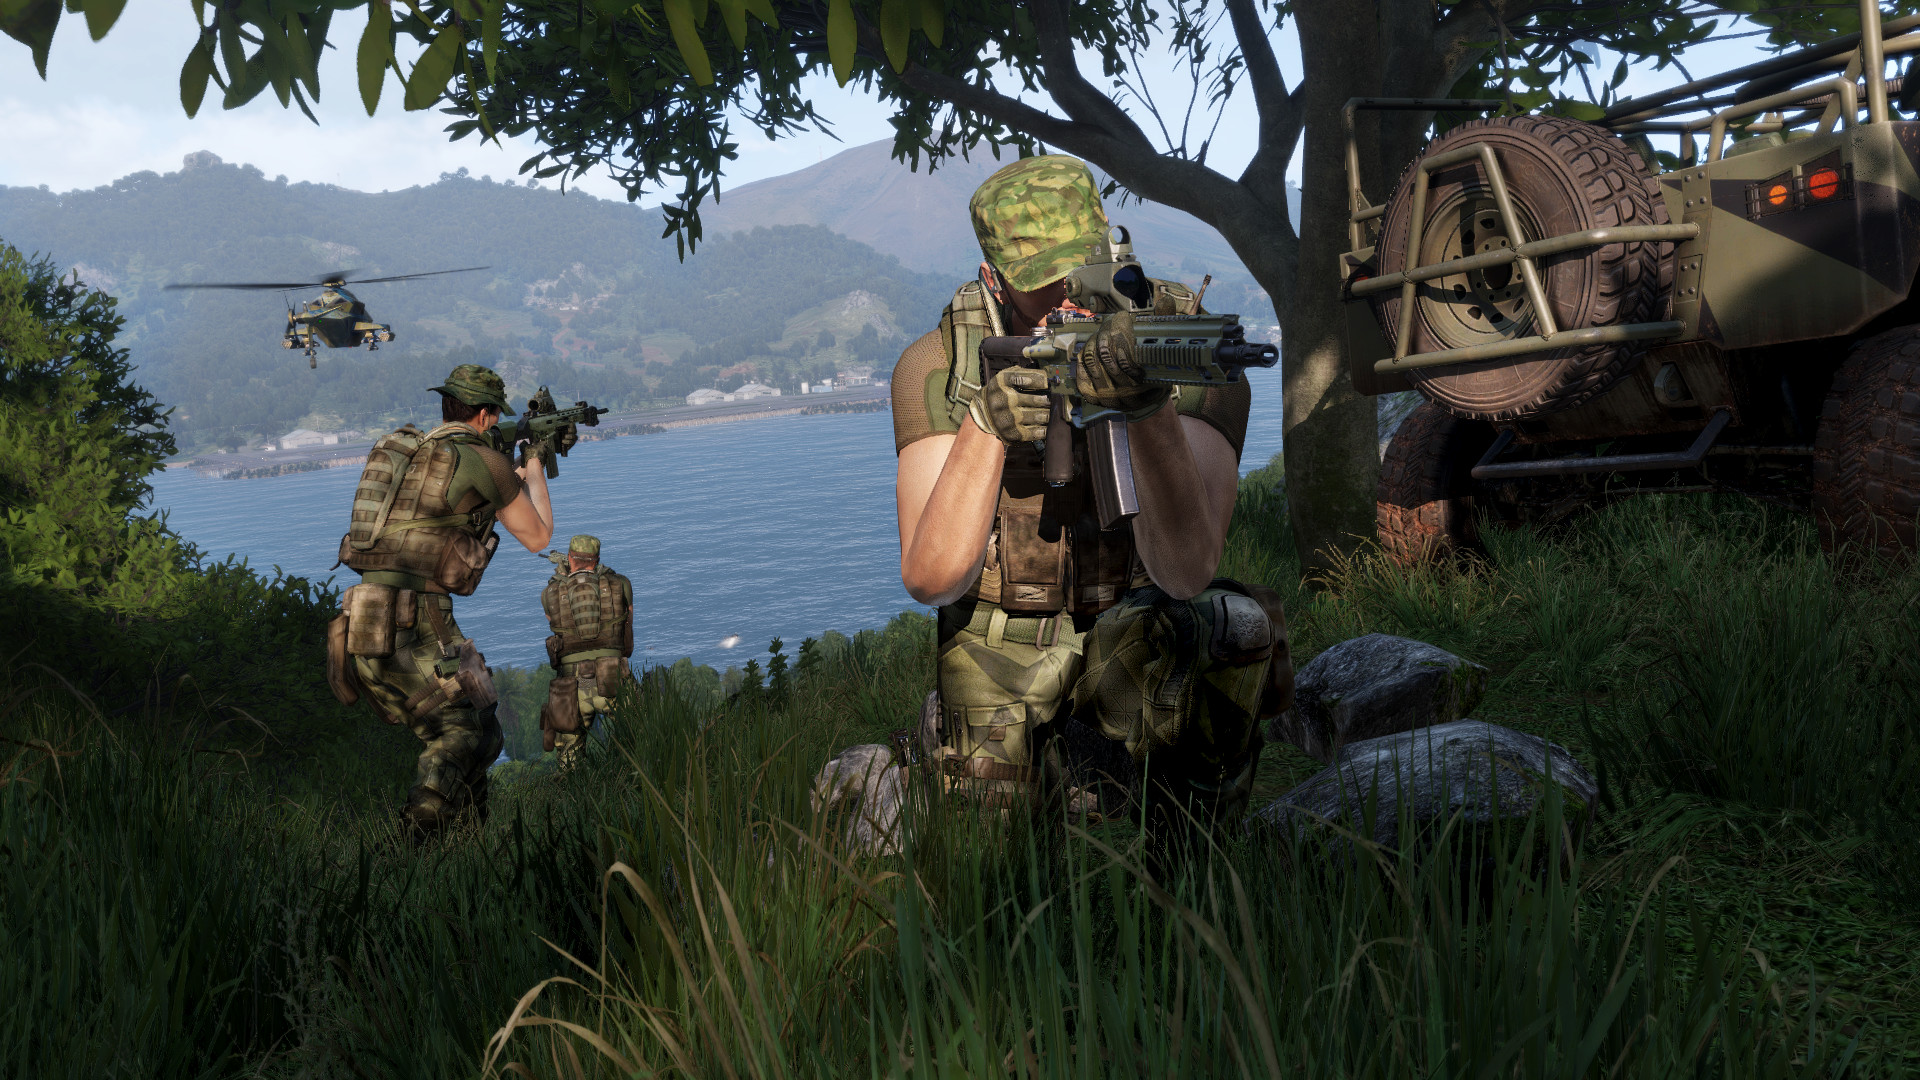 Arma 3 has a new Ultimate Edition that's on sale now   PCGamesN